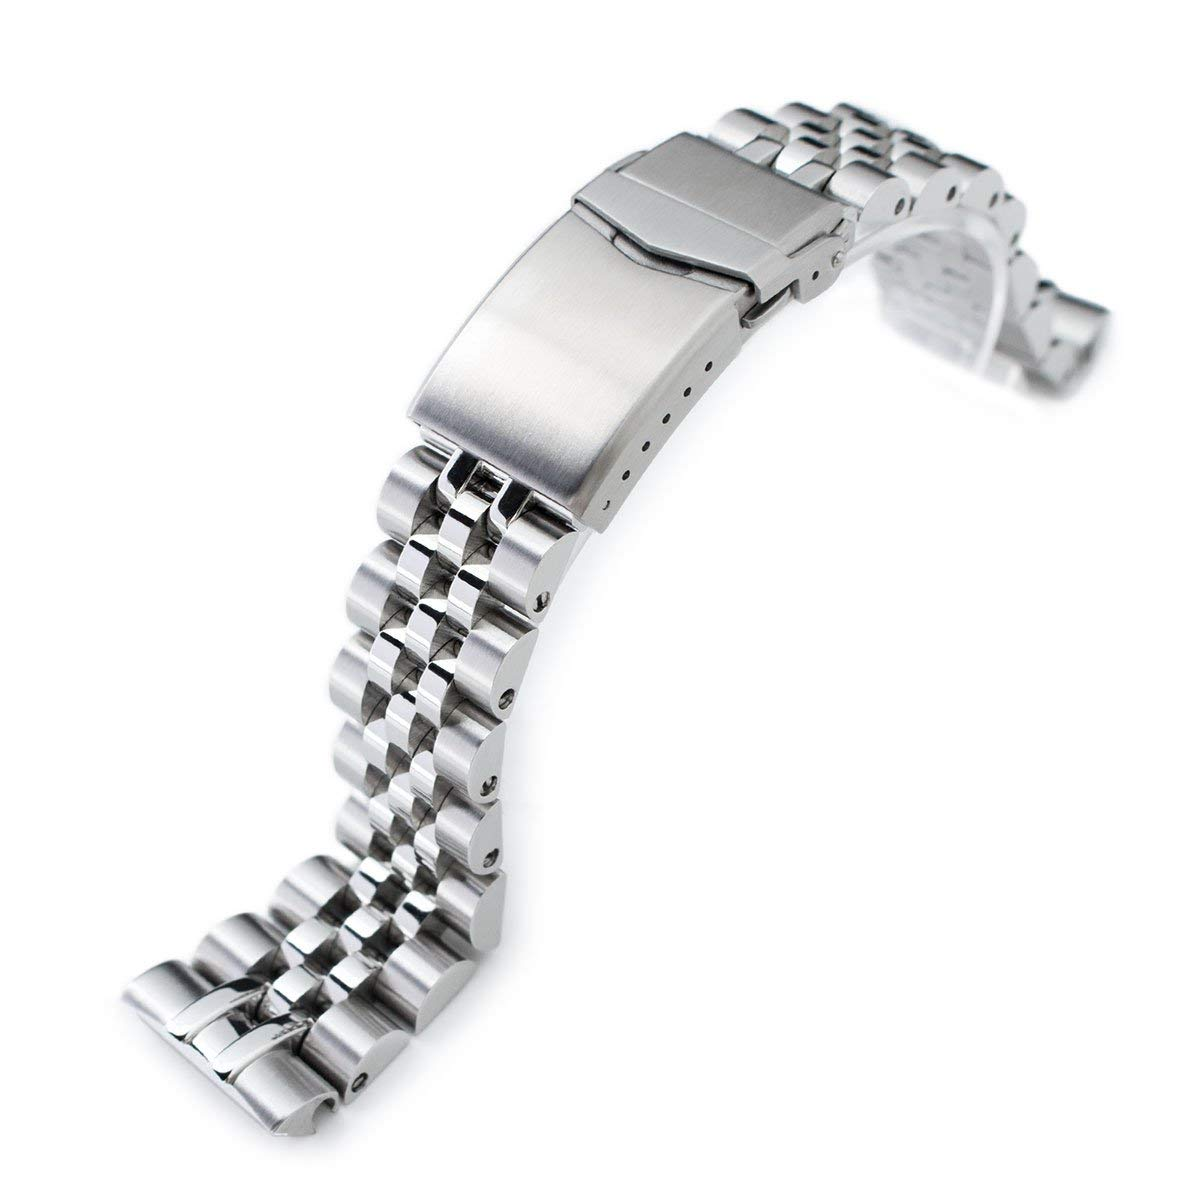 22mm Angus Jubilee 316L SS Watch Bracelet for Seiko Turtle SRP777, Brushed & Polished, V-Clasp